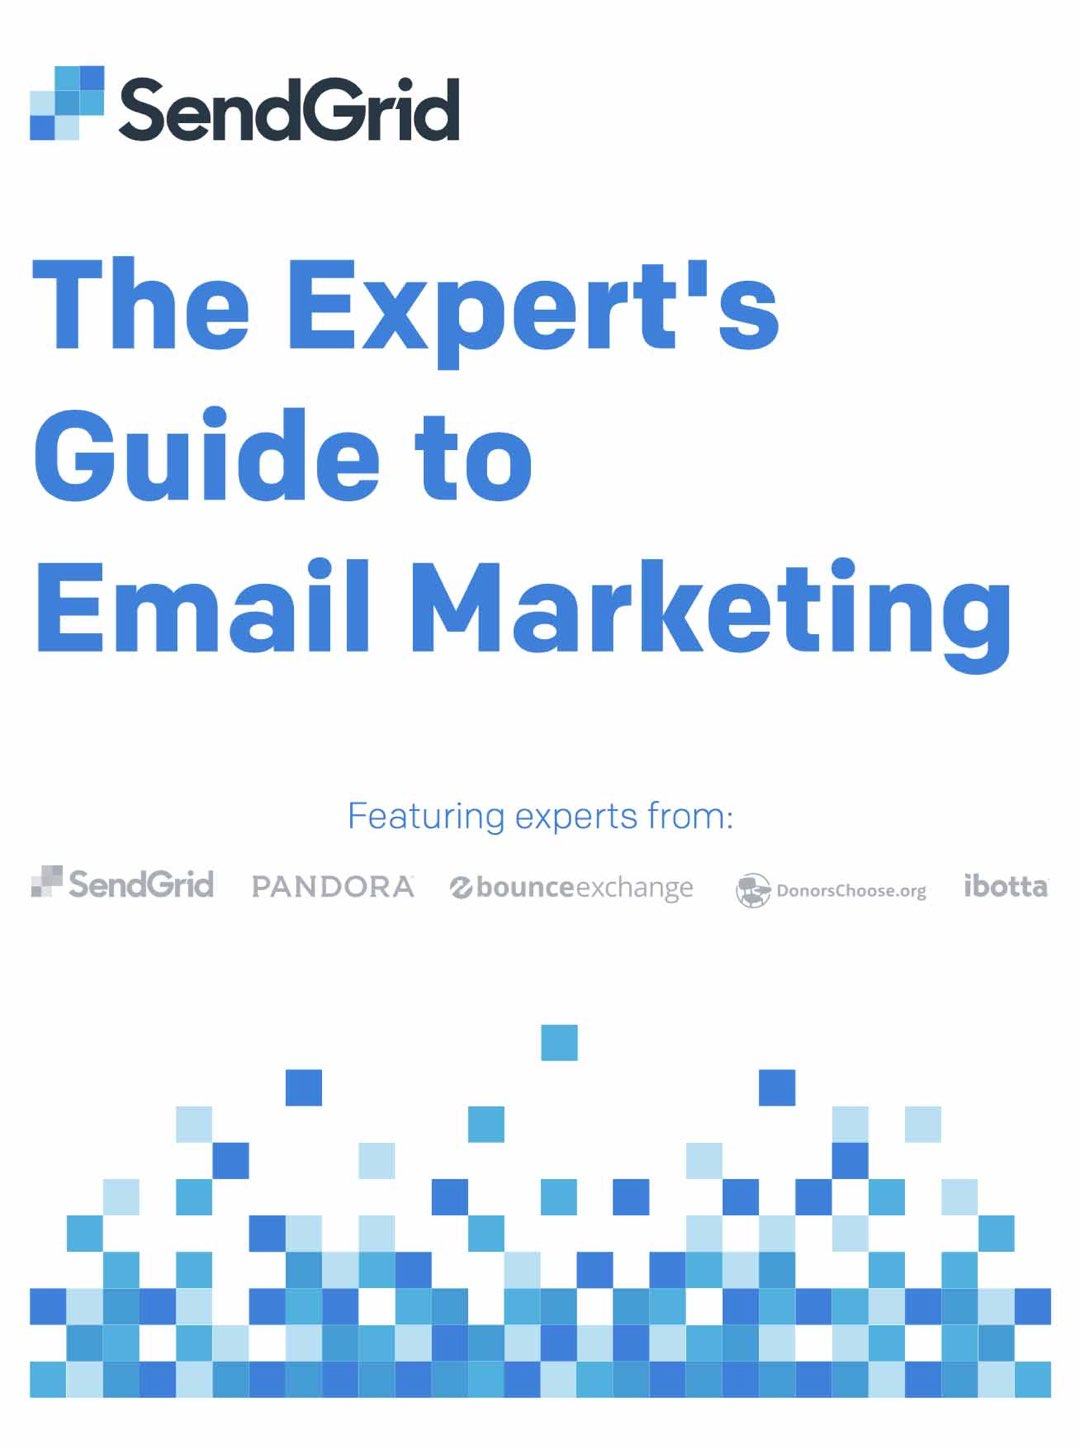 The Expert's Guide to Email Marketing